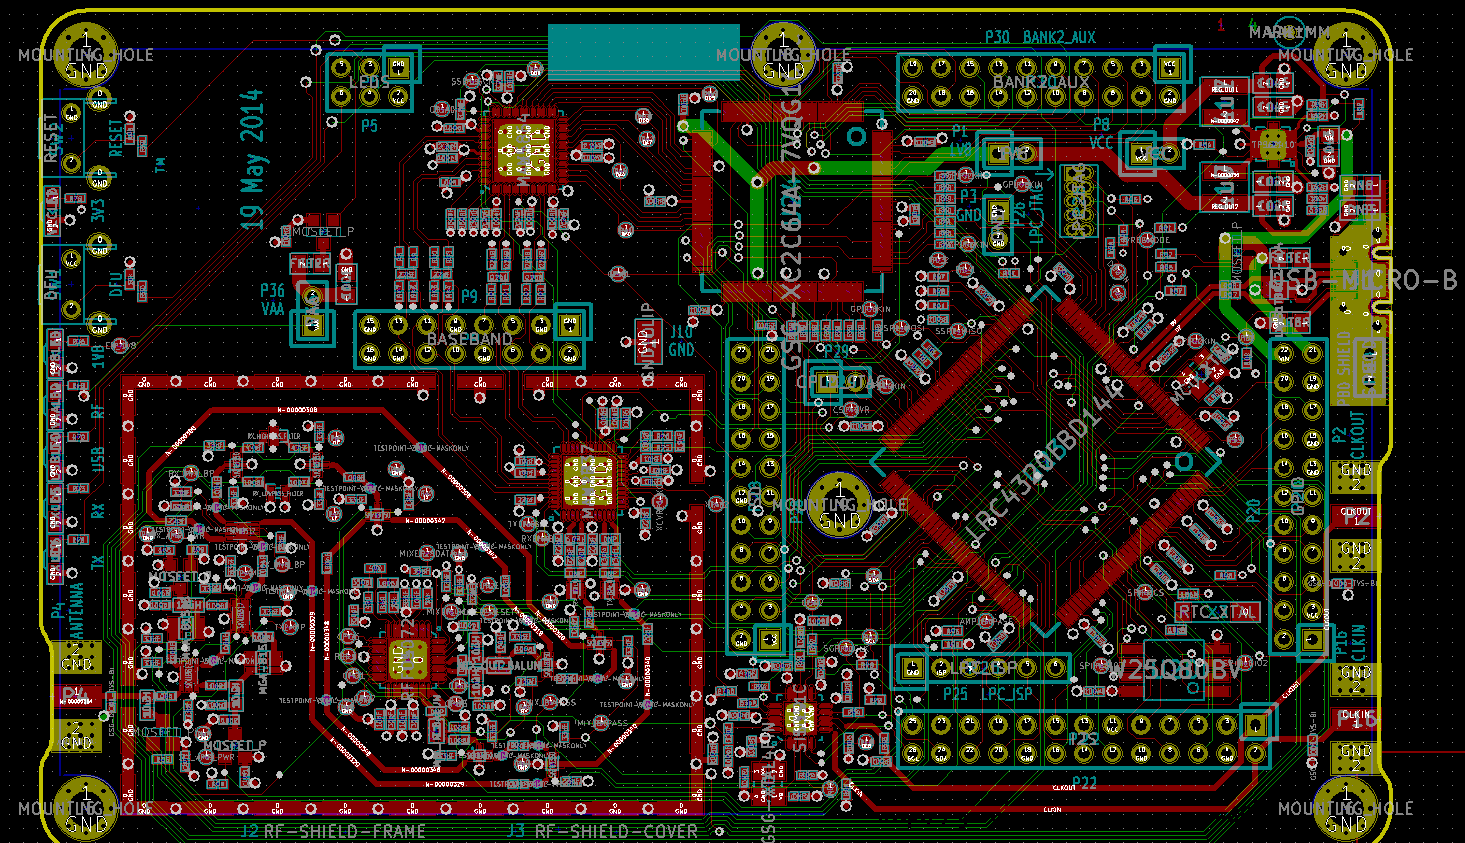 routage_pcb